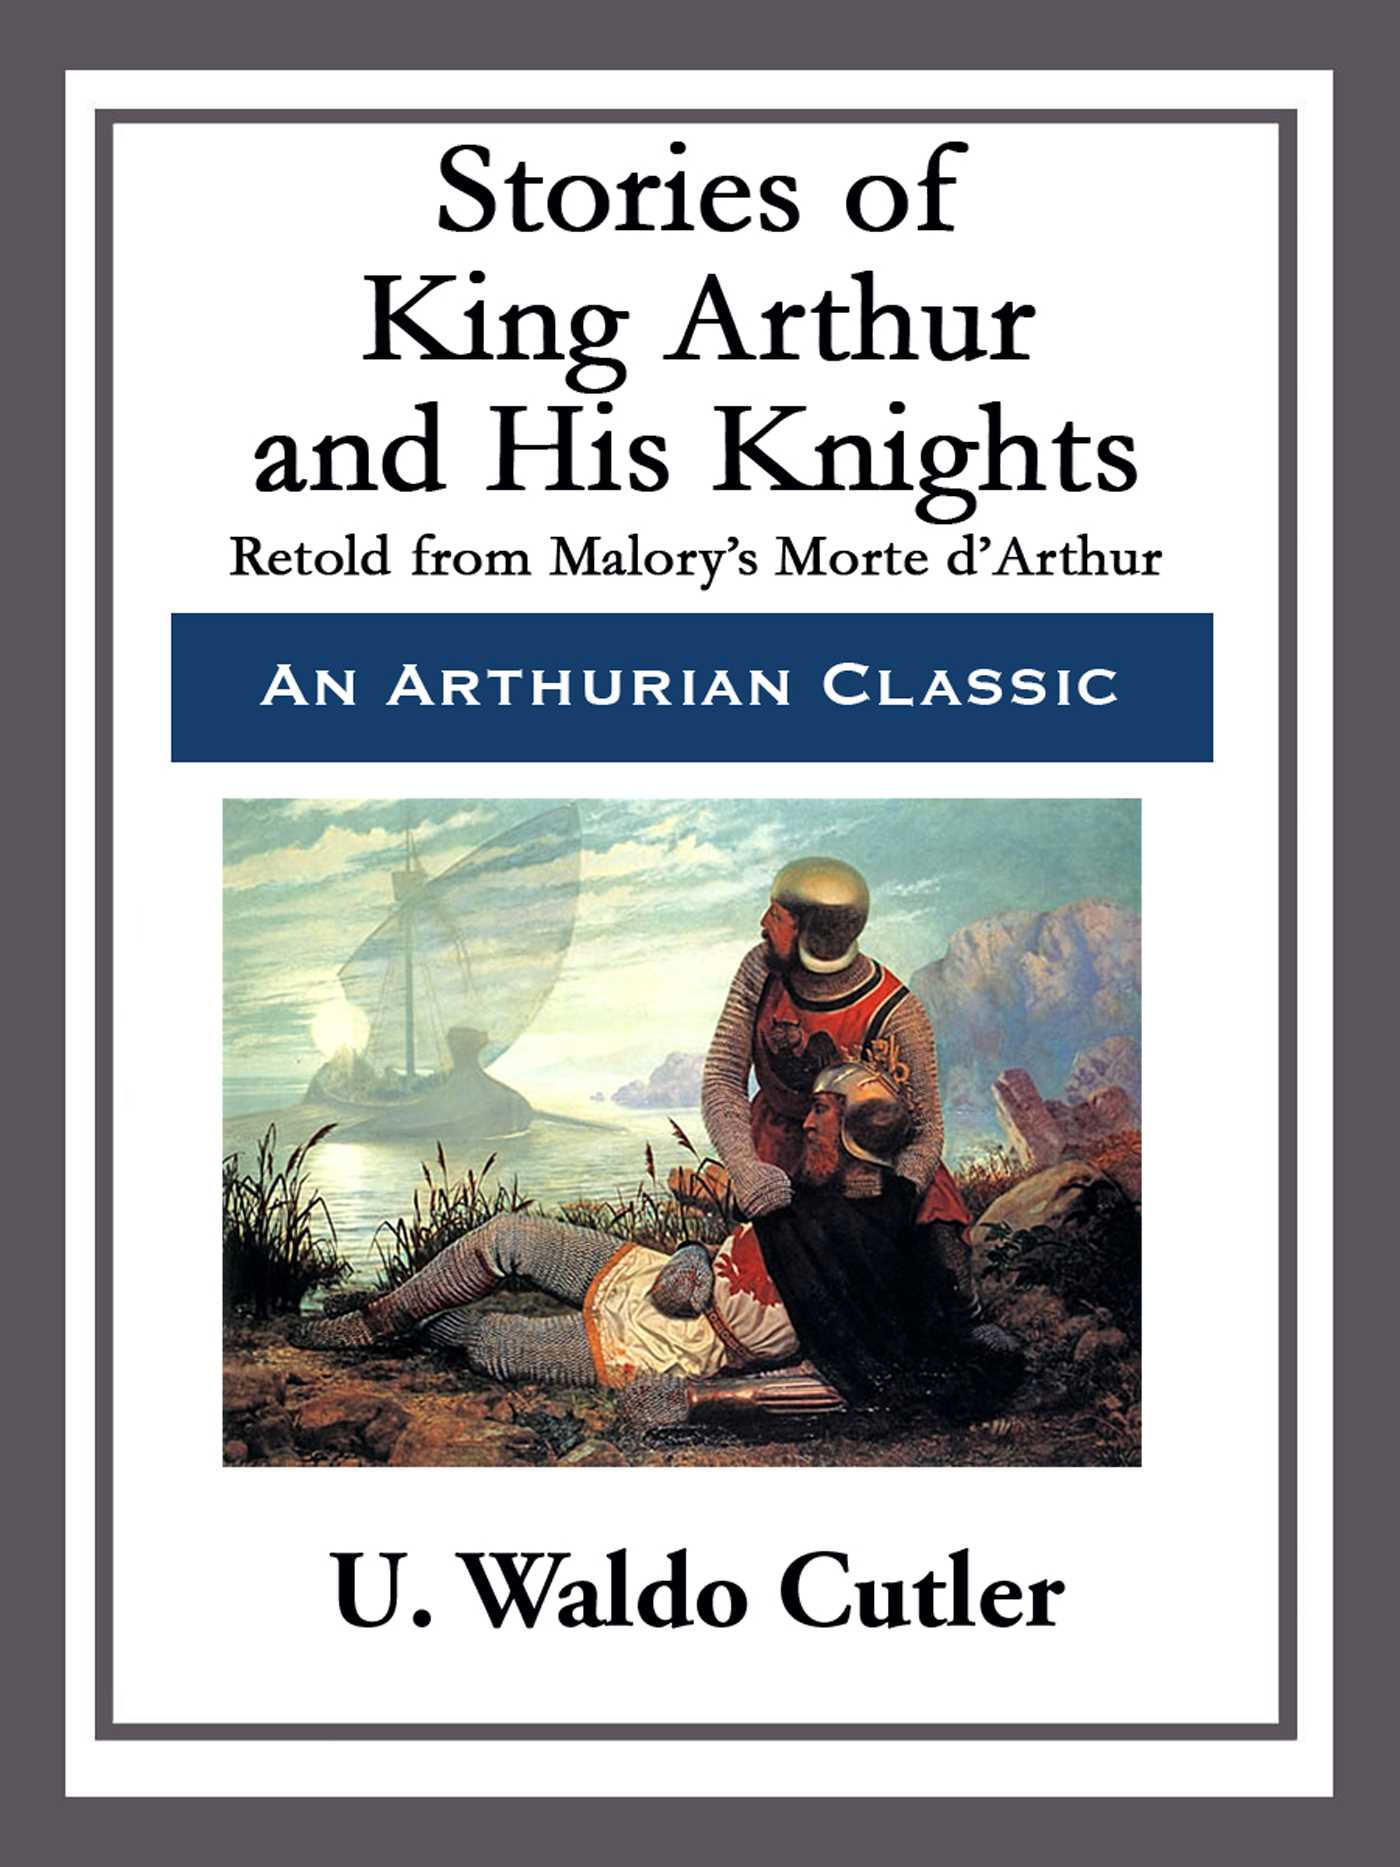 Stories of king arthur and his knights 9781682991909 hr